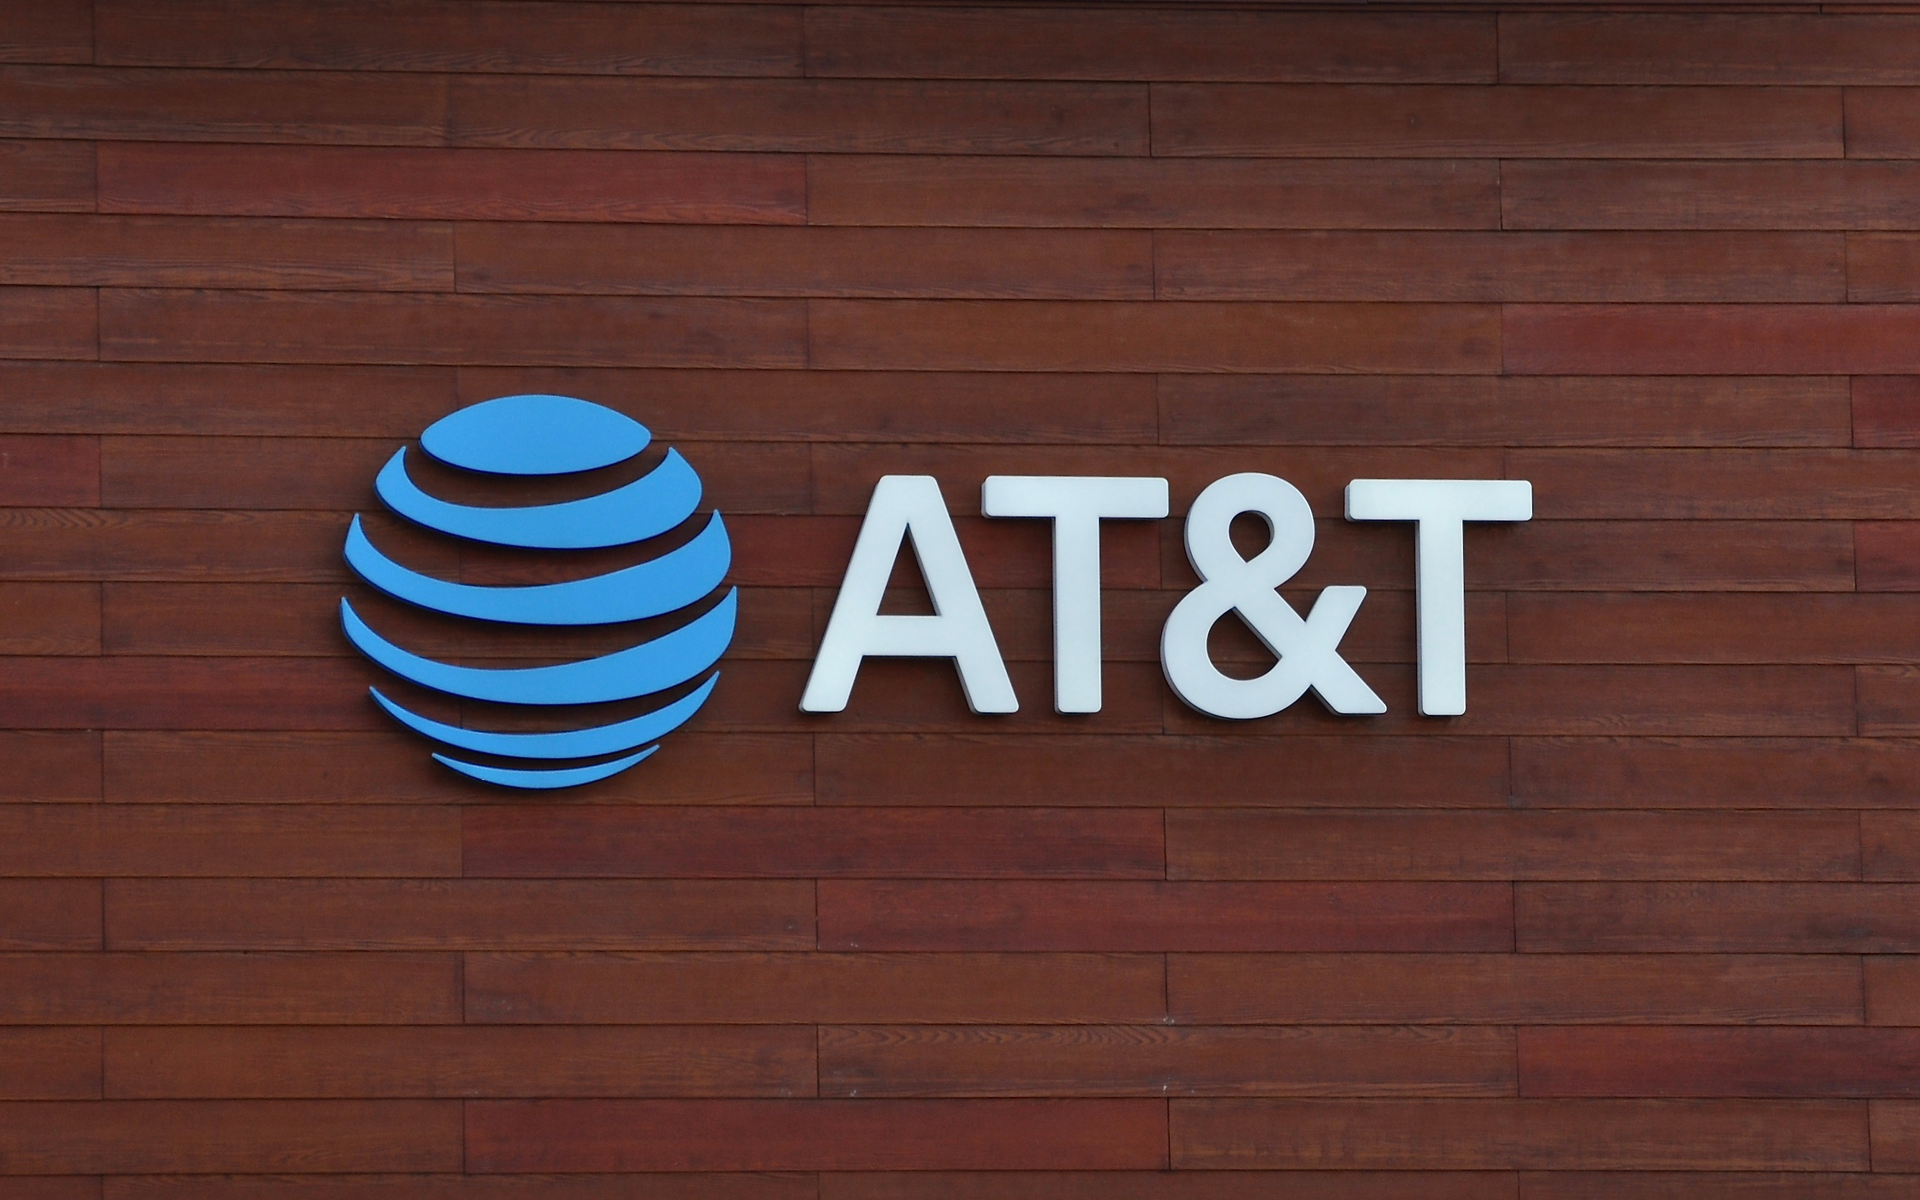 AT&T Partners with BitPay to Make a Move Into the Crypto World